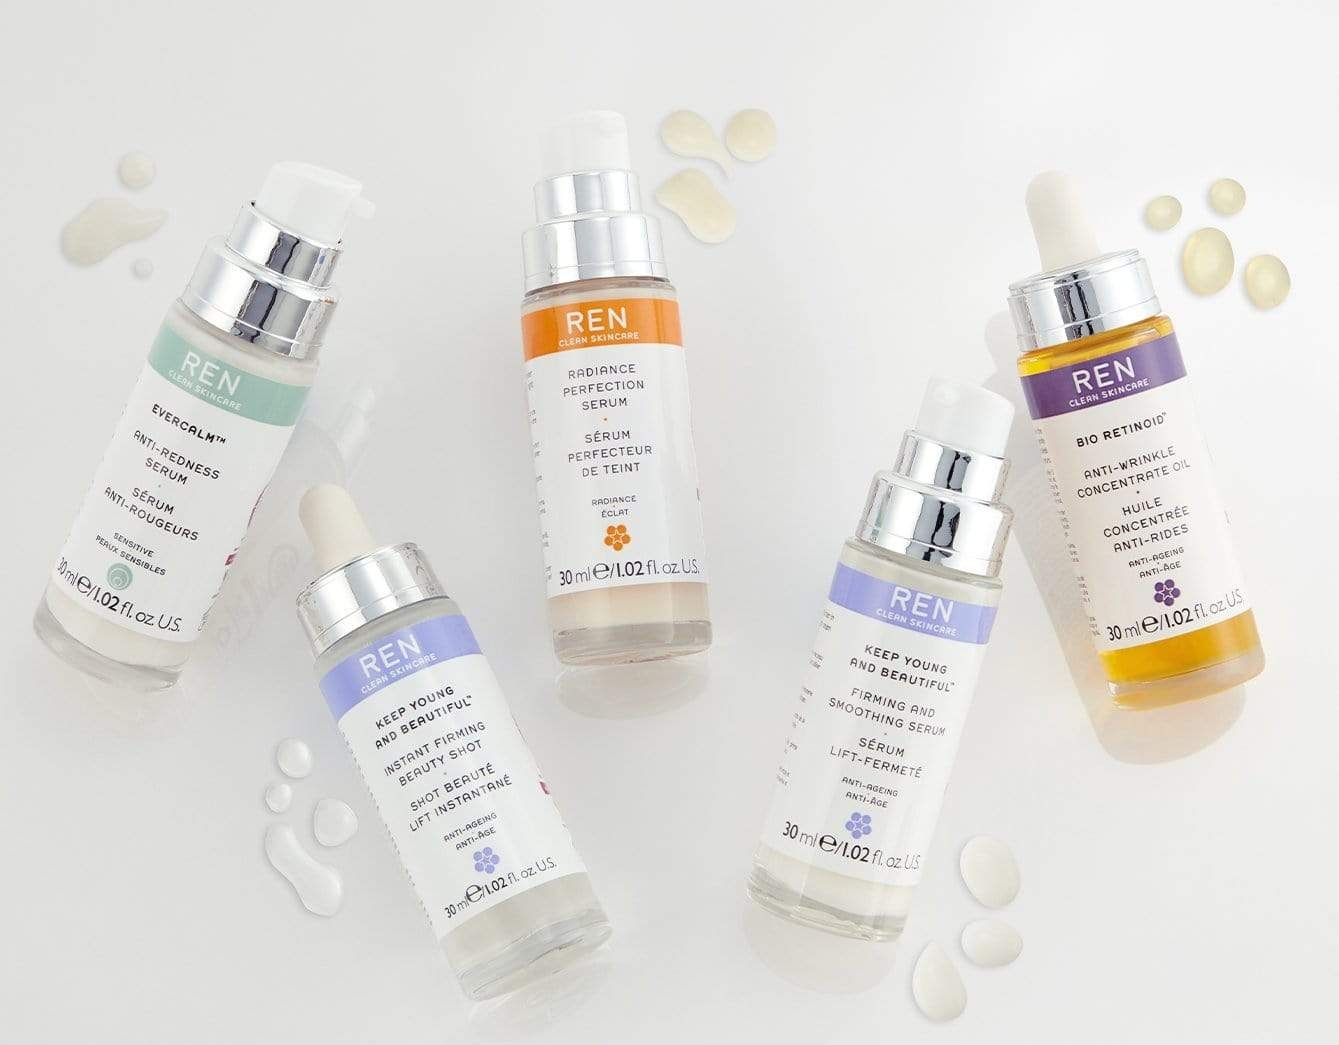 20% OFF REN SKINCARE - For 20% off your first purchase of Ren skincare, go to renskincare.com/fatmascara to check out some of our favorite products, then use the code FATMASCARA.